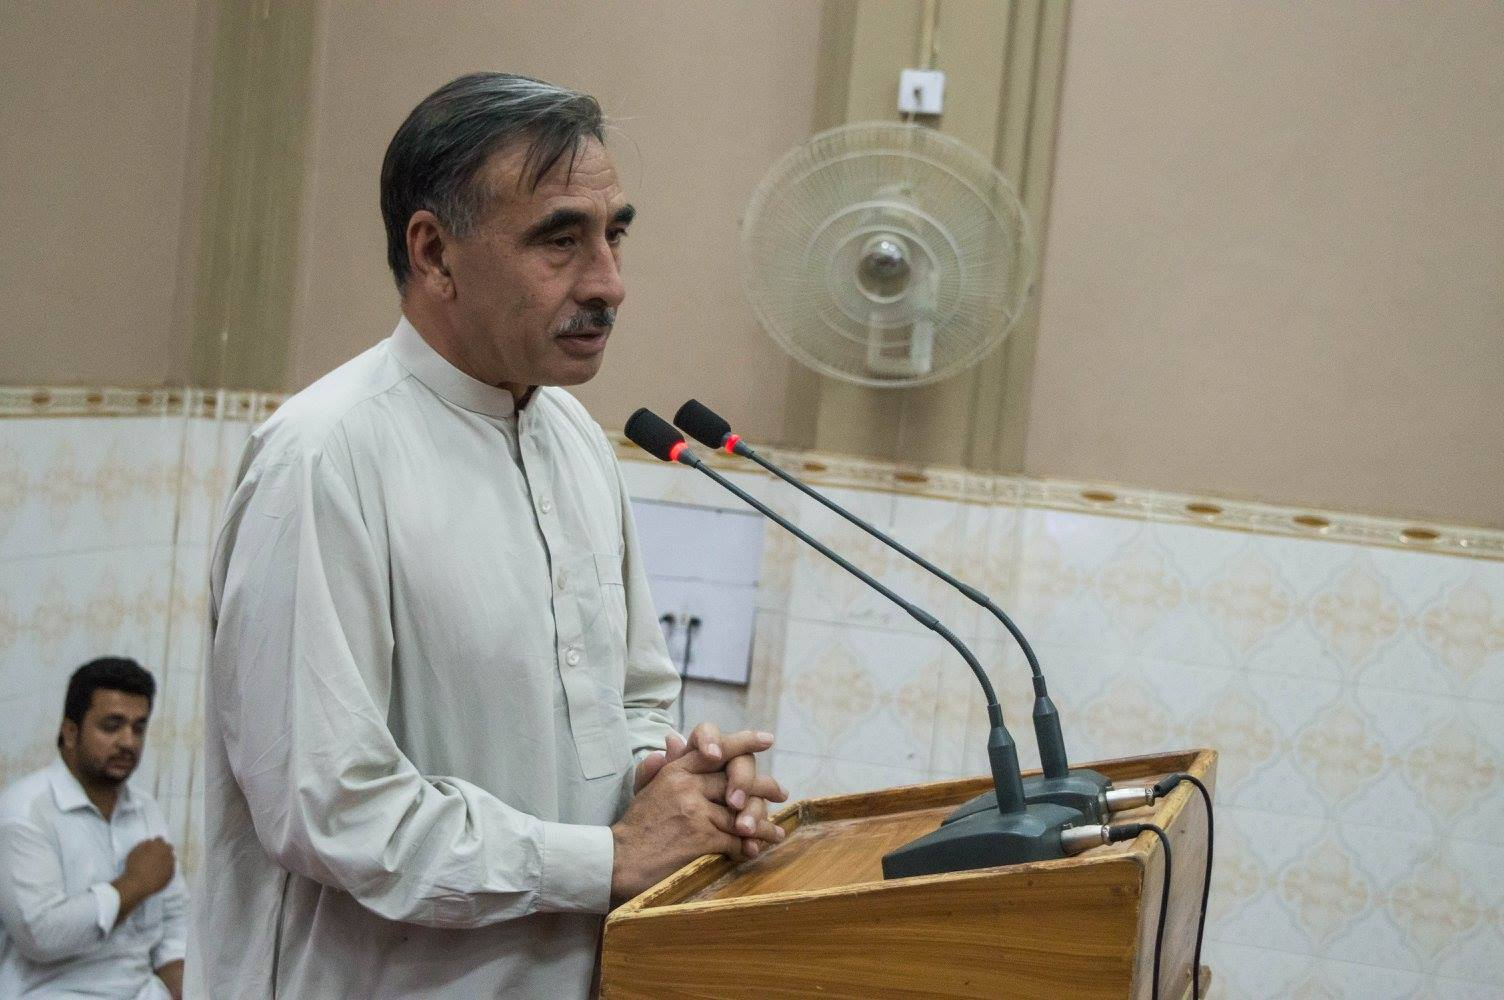 Vice Chancellor University of Peshawar Prof. Dr. Rasul Jan